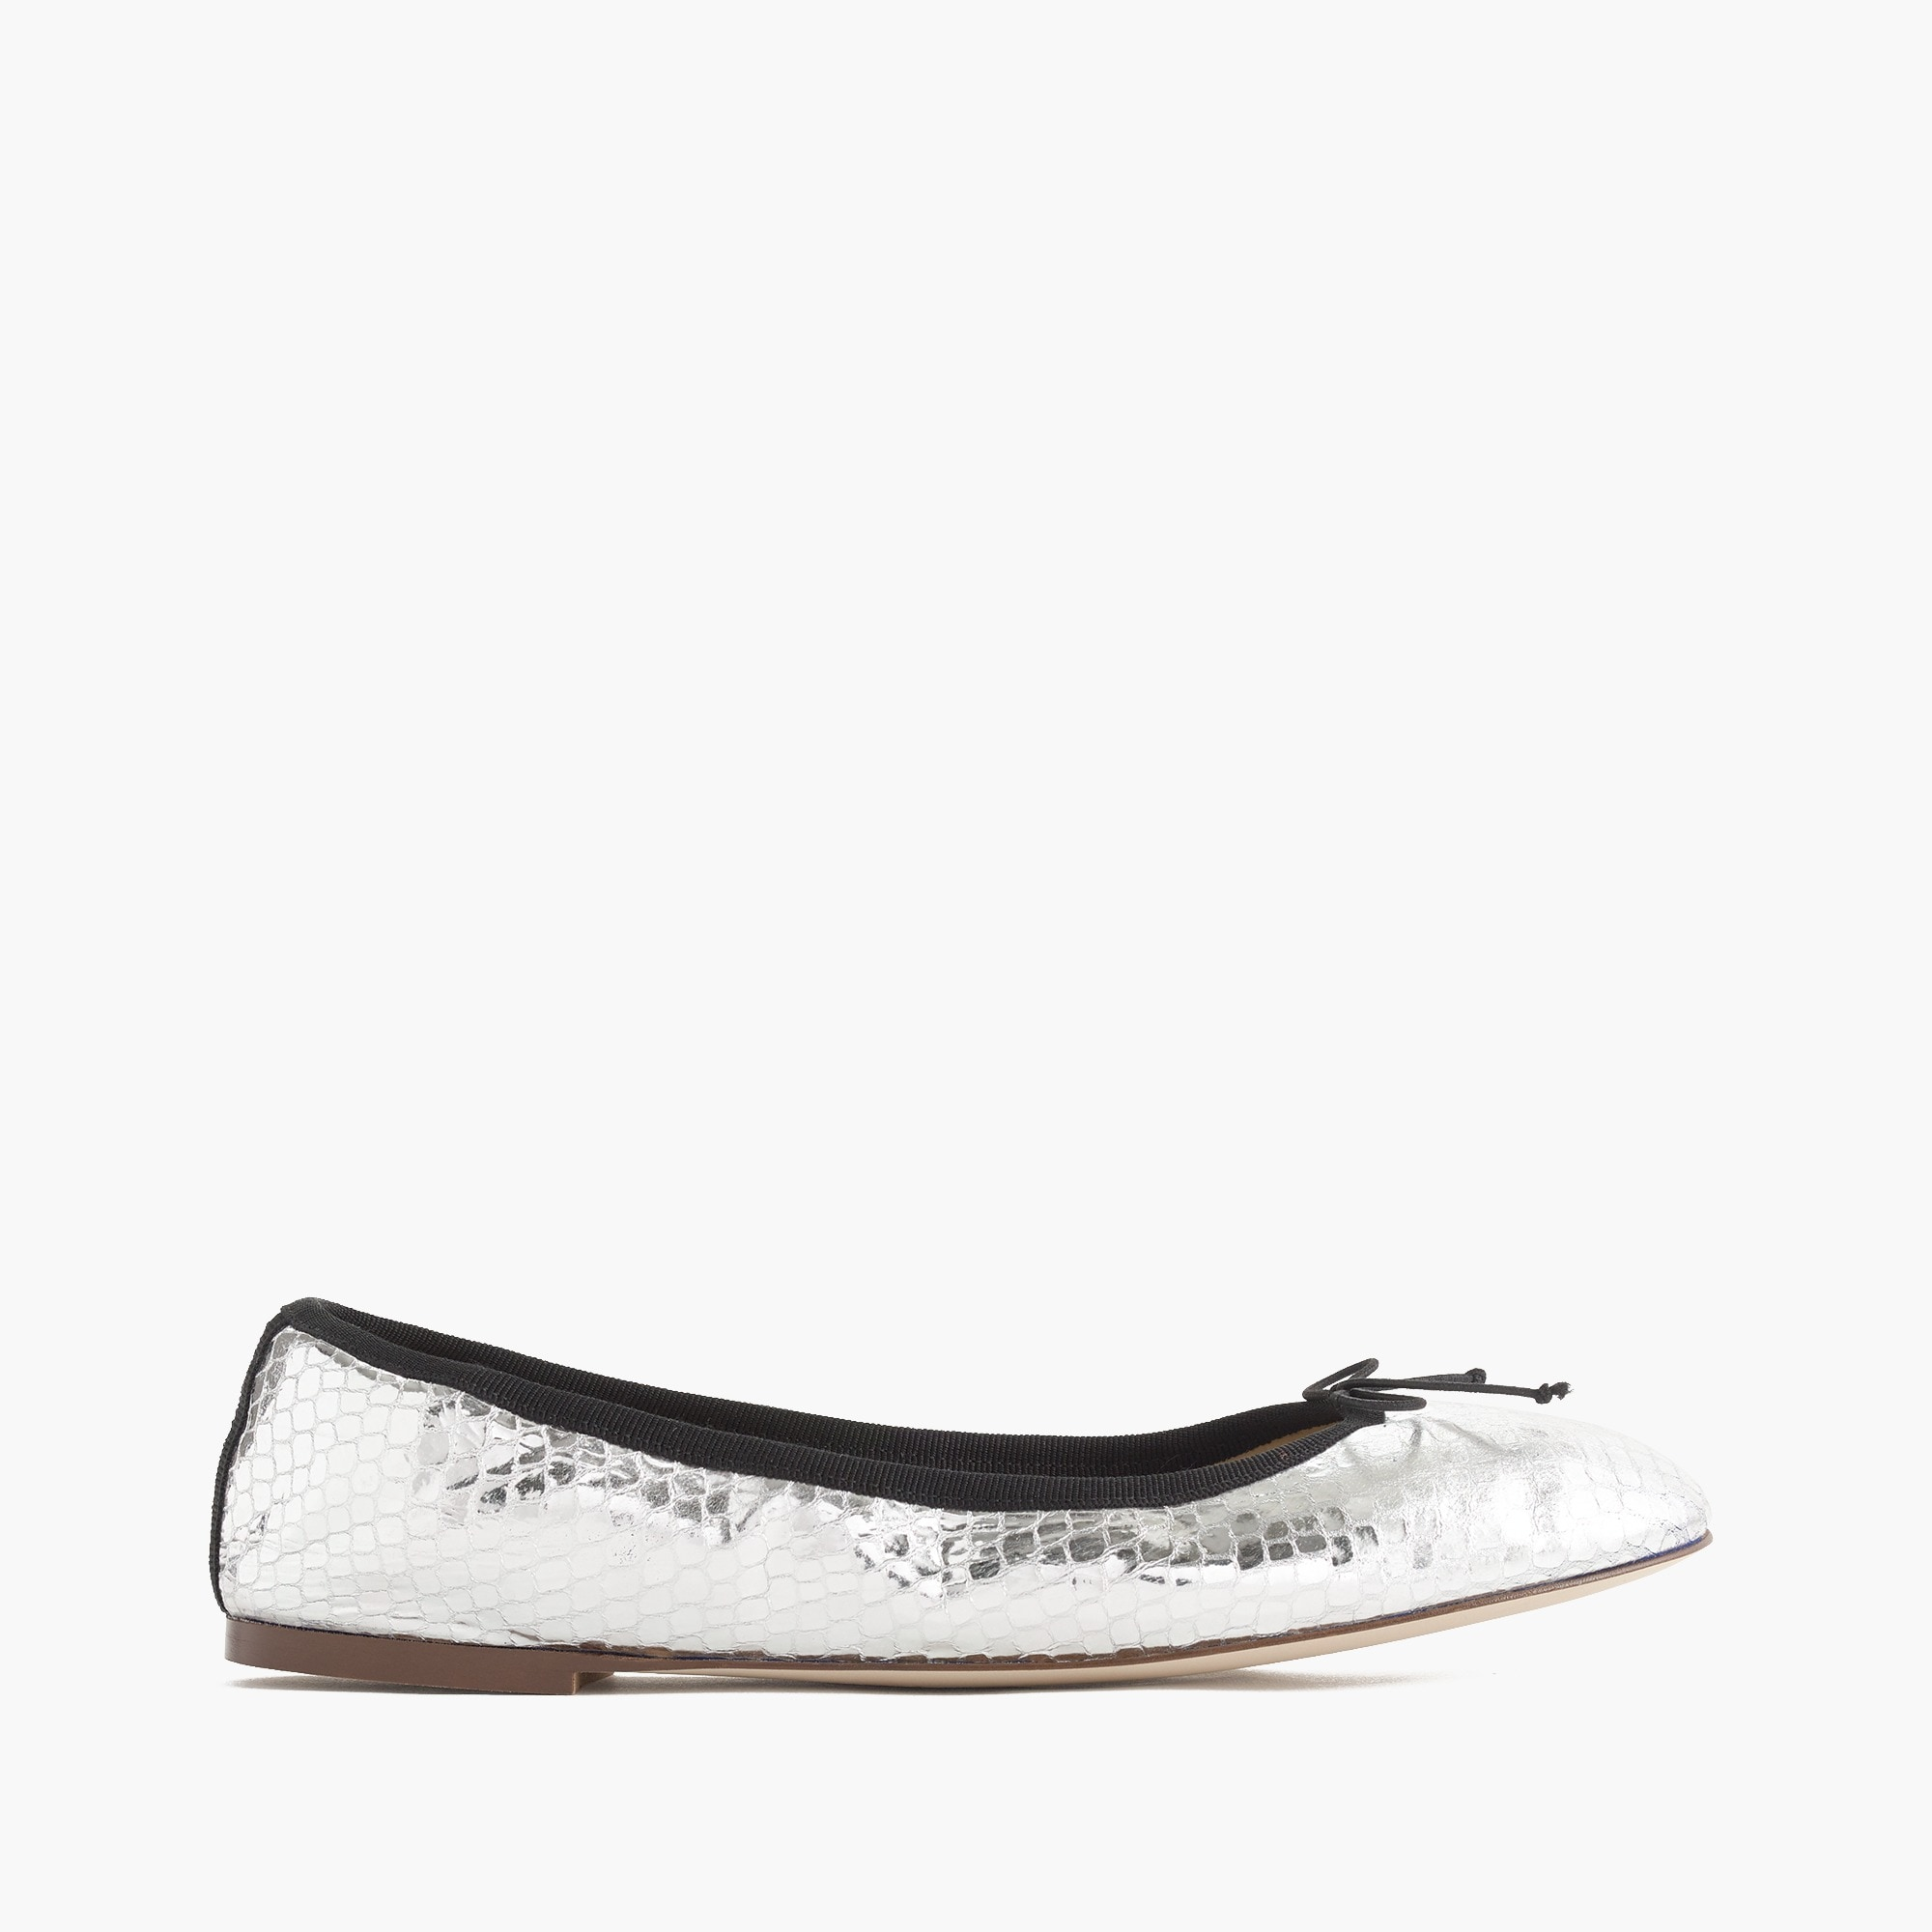 Evie ballet flats in mirrored silver